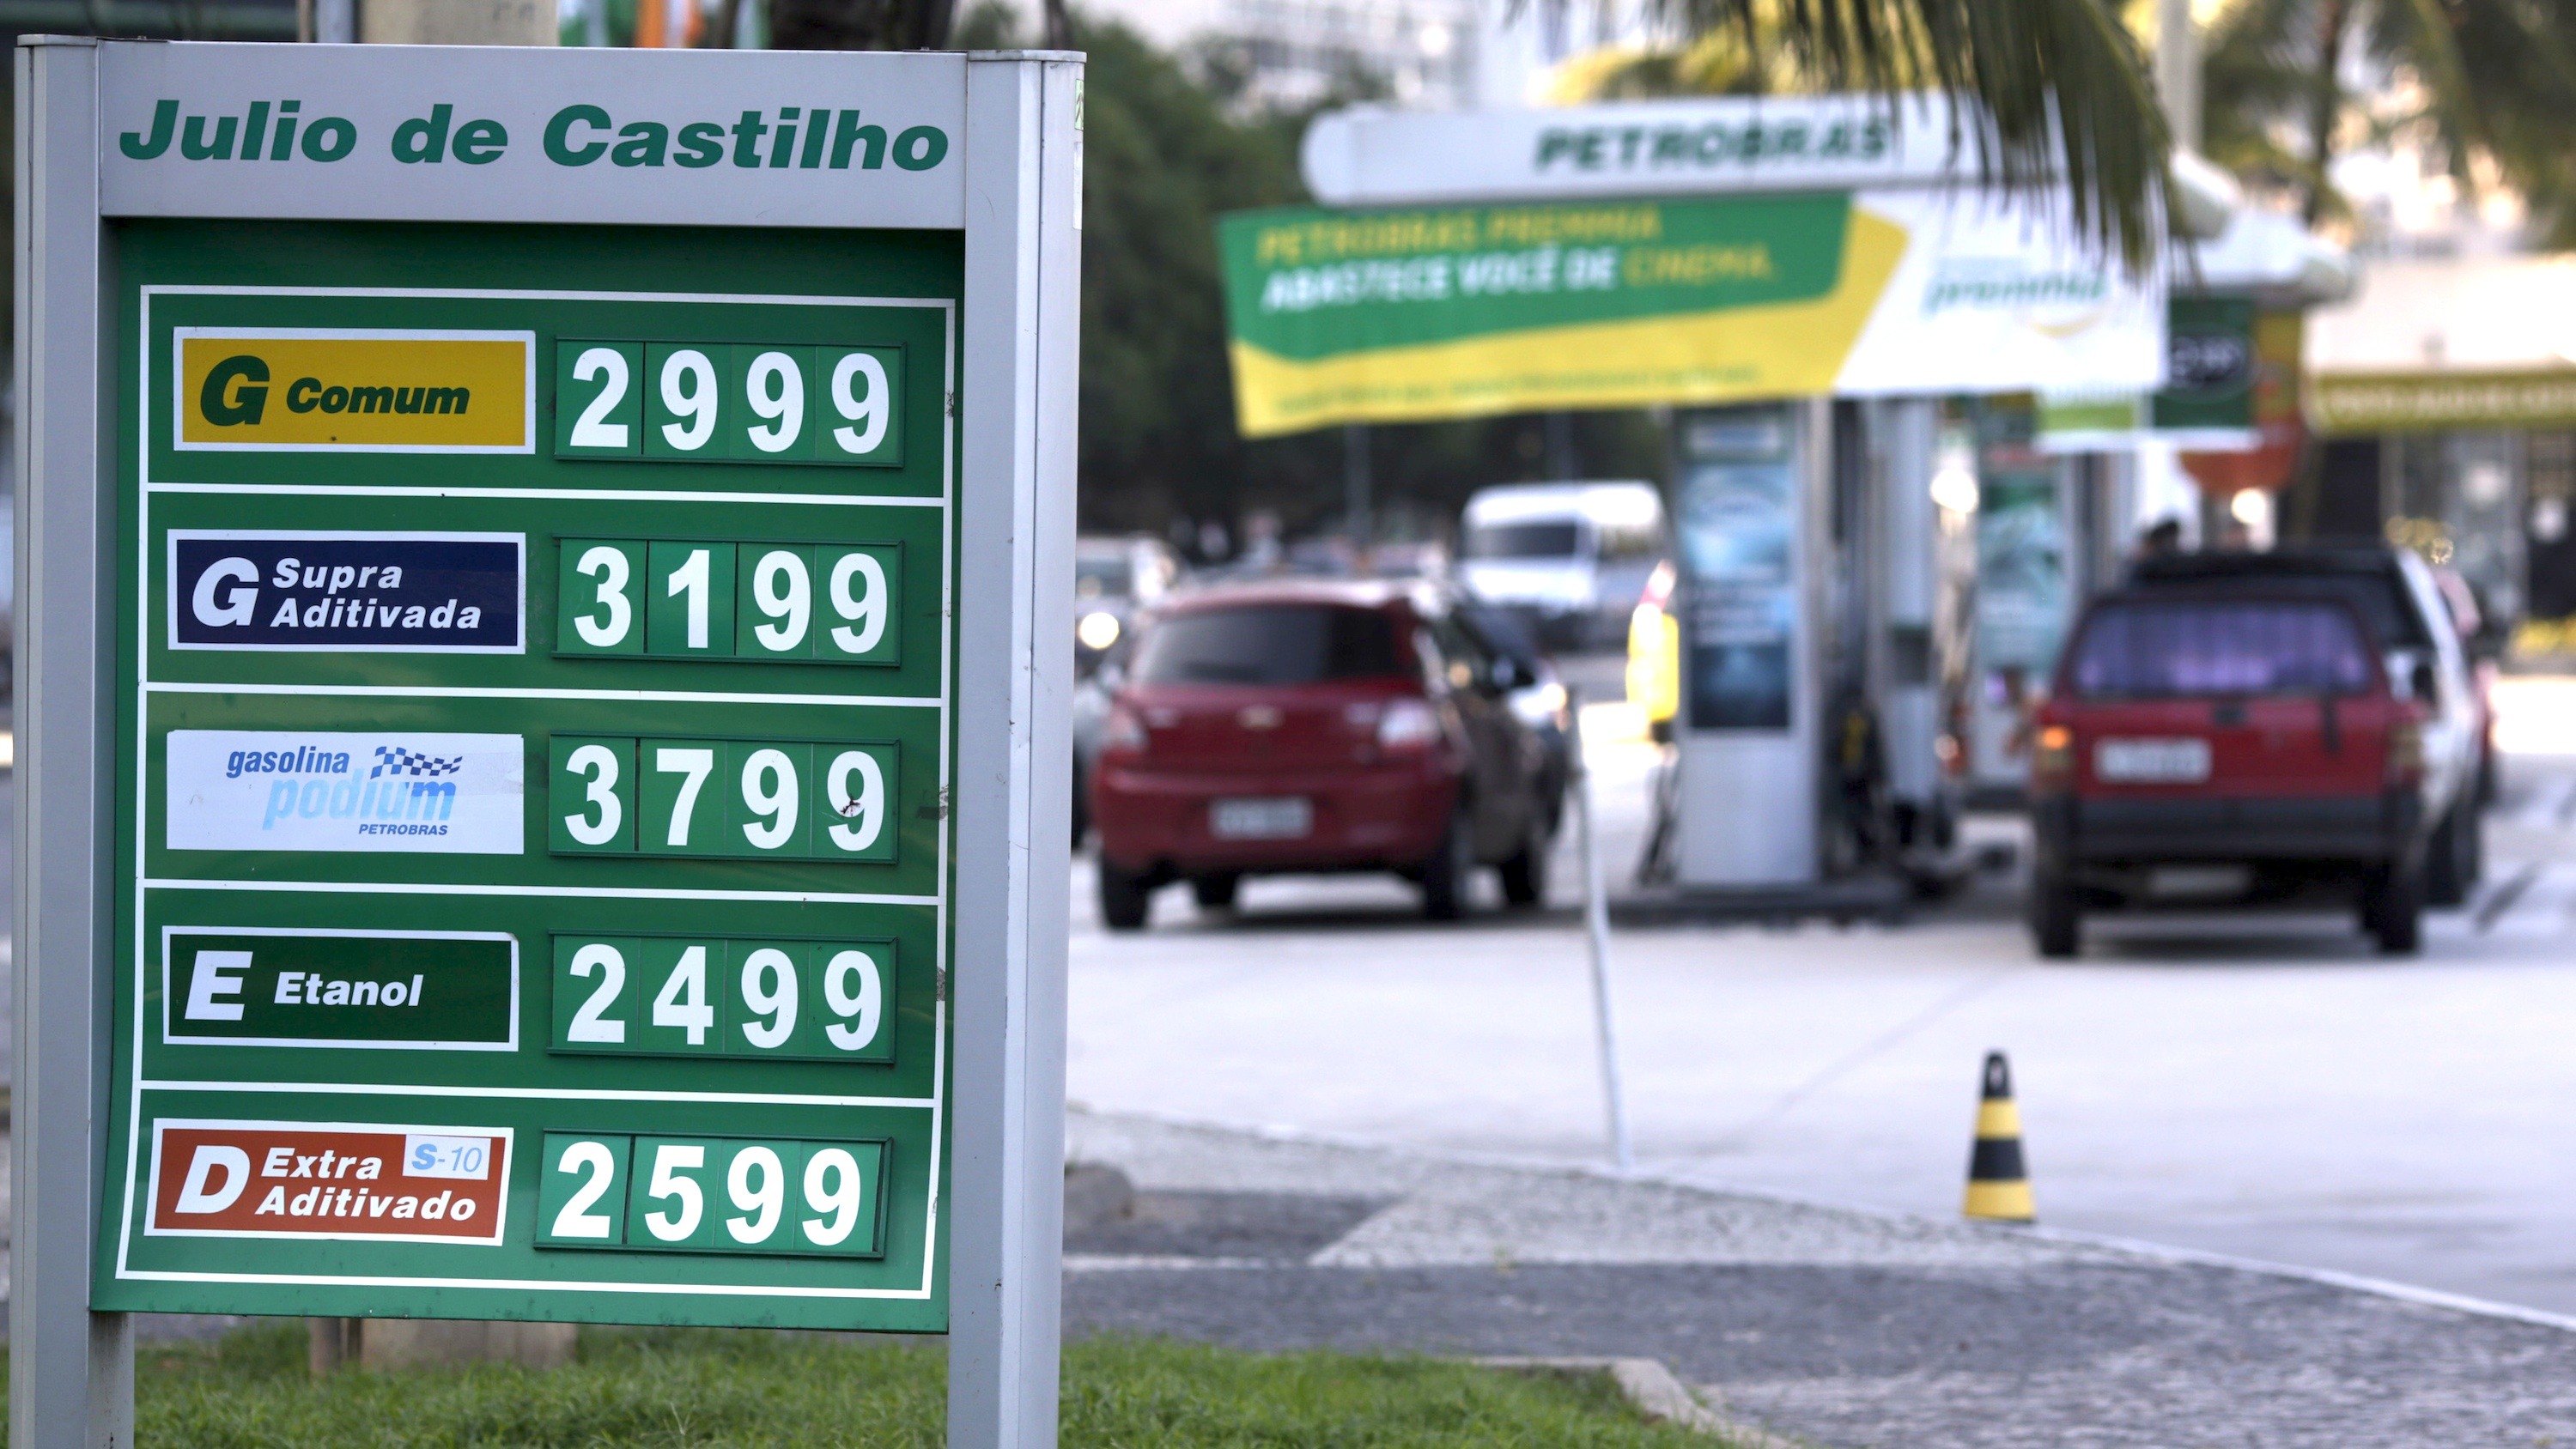 A sign displays gas and ethanol prices at a Brazilian Petrobras station.